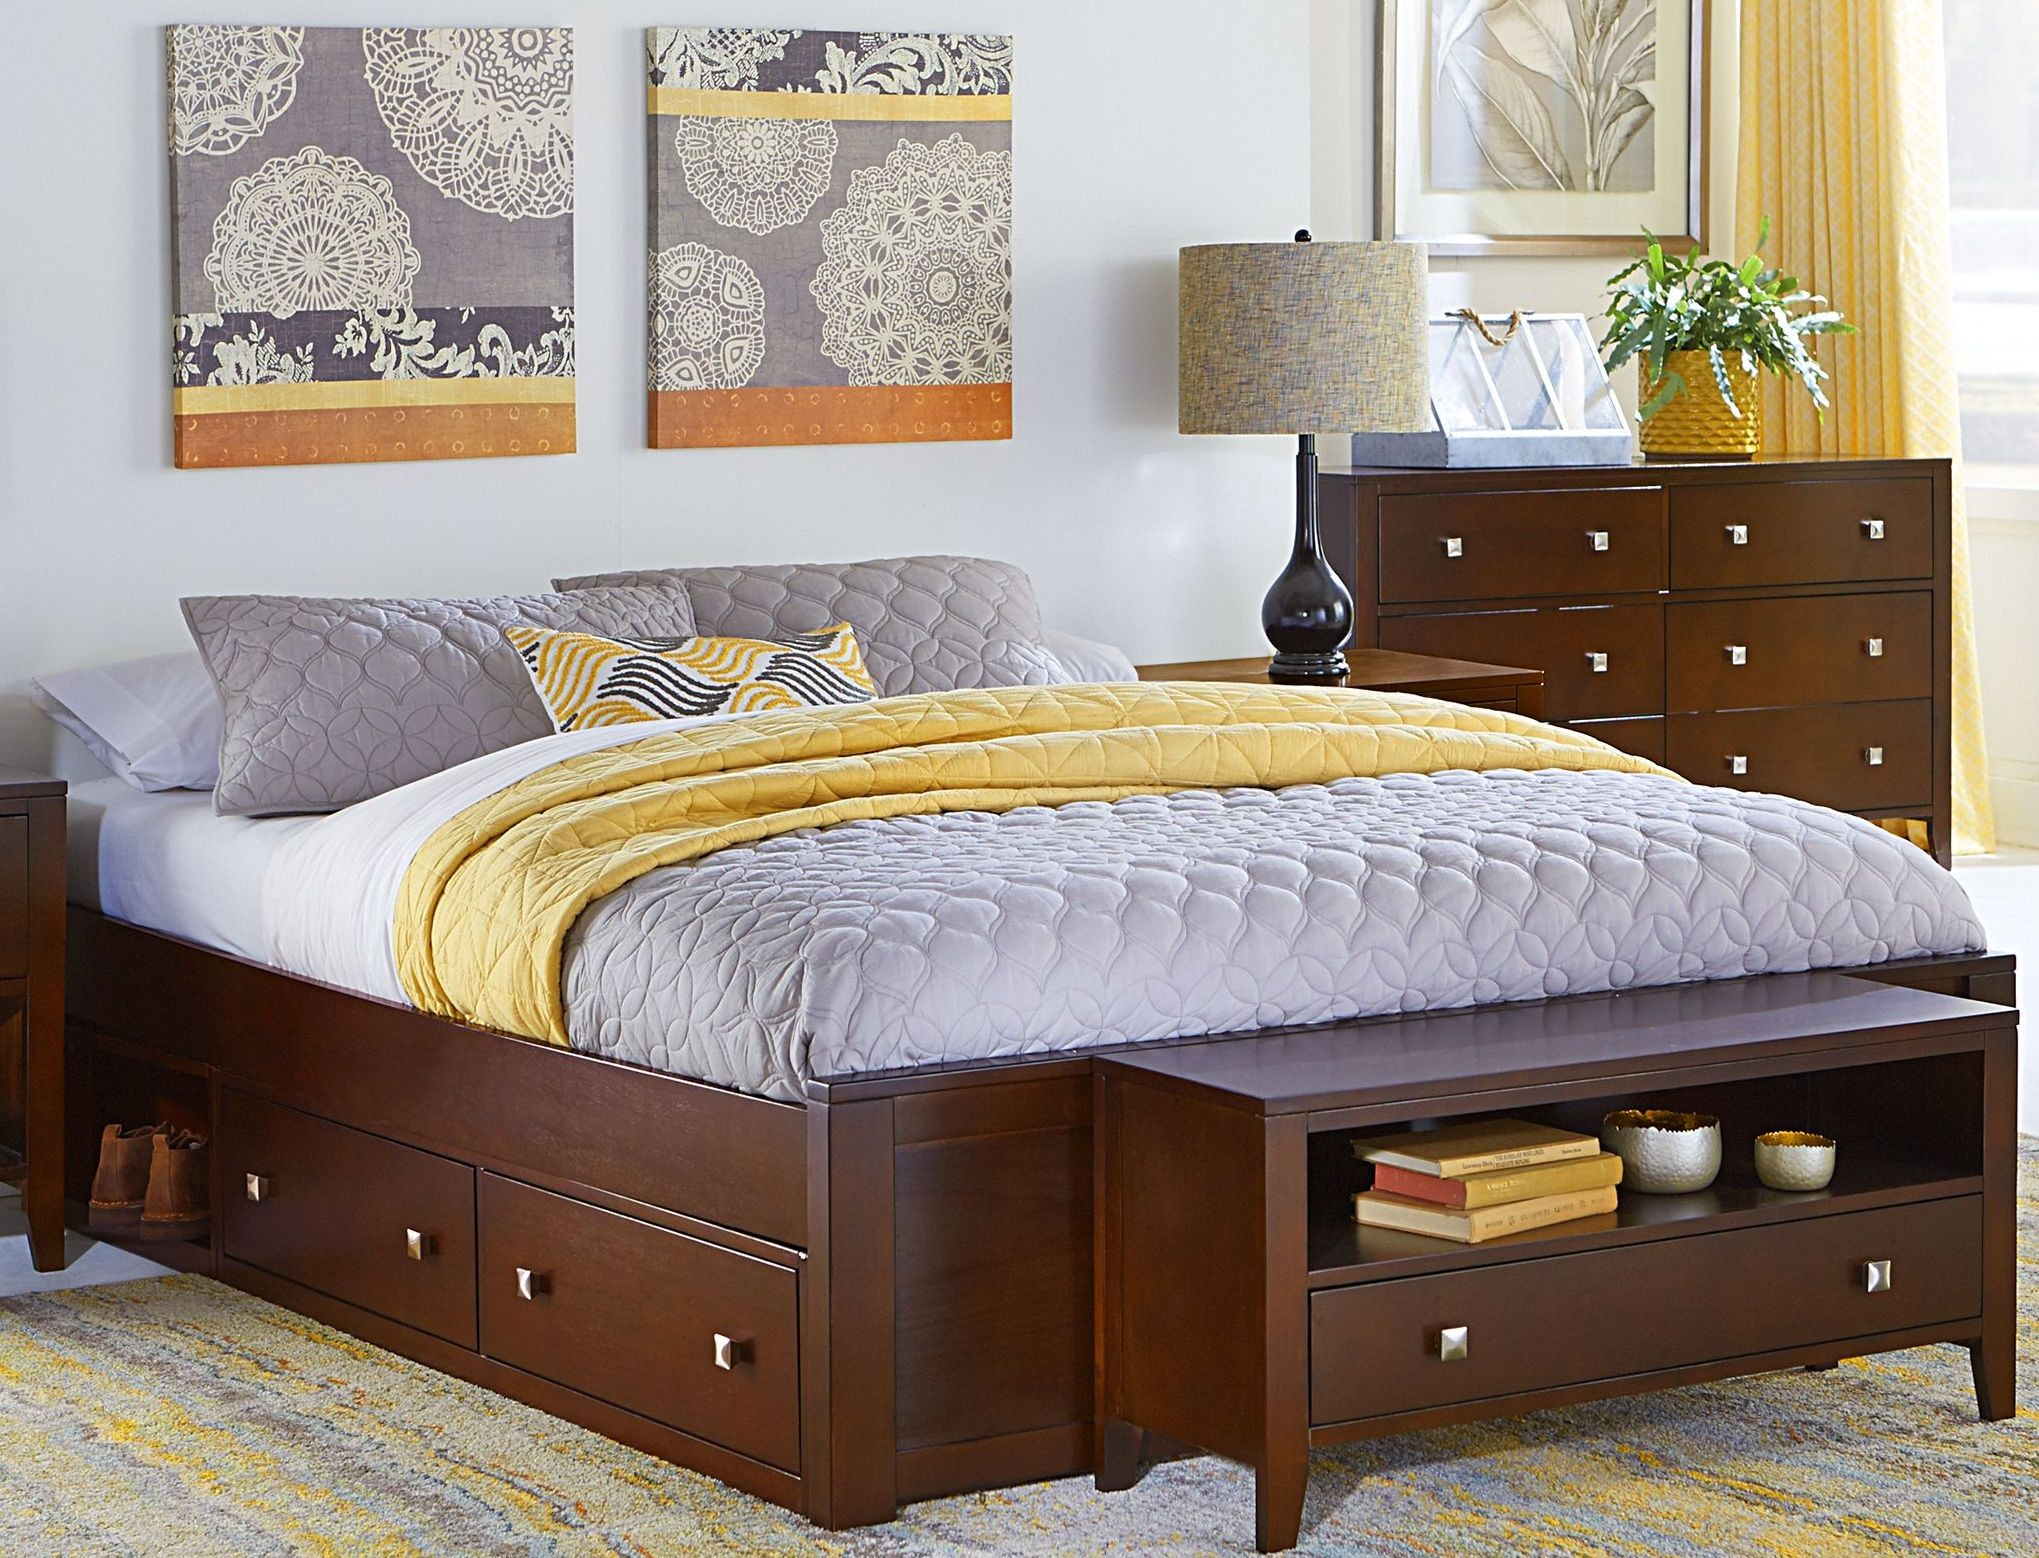 Pulse Cherry King Platform Bed With Storage From Ne Kids